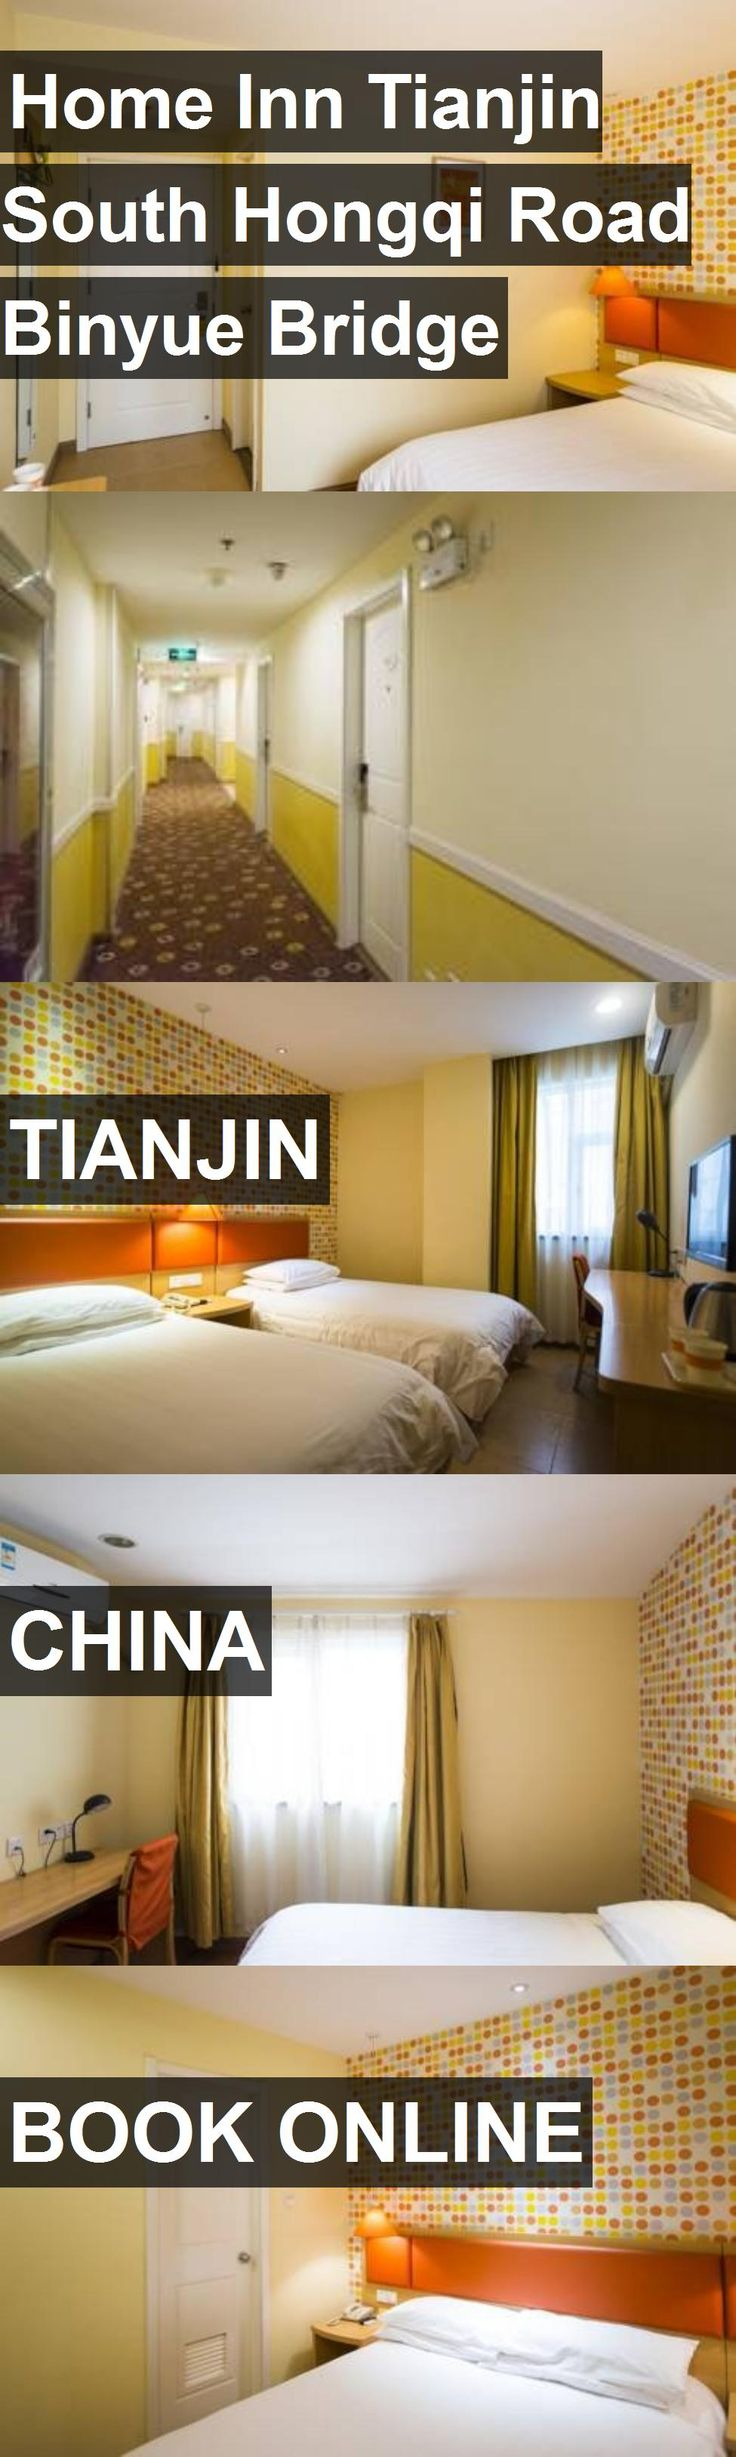 Hotel Home Inn Tianjin South Hongqi Road Binyue Bridge in Tianjin, China. For more information, photos, reviews and best prices please follow the link. #China #Tianjin #travel #vacation #hotel